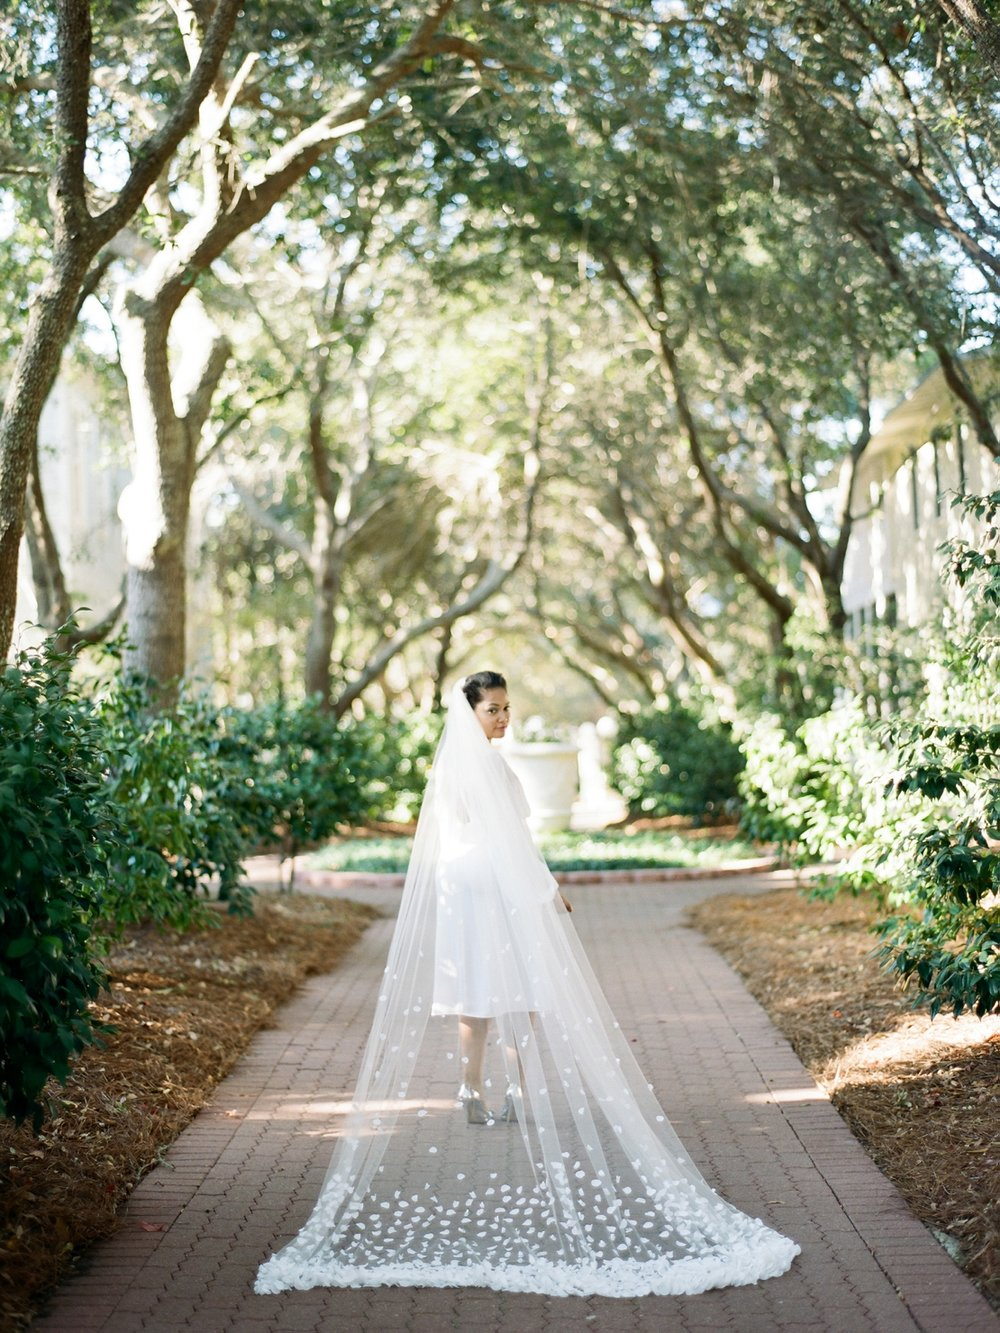 carillon_beach_wedding_photographer_shannon_griffin_0010.jpg